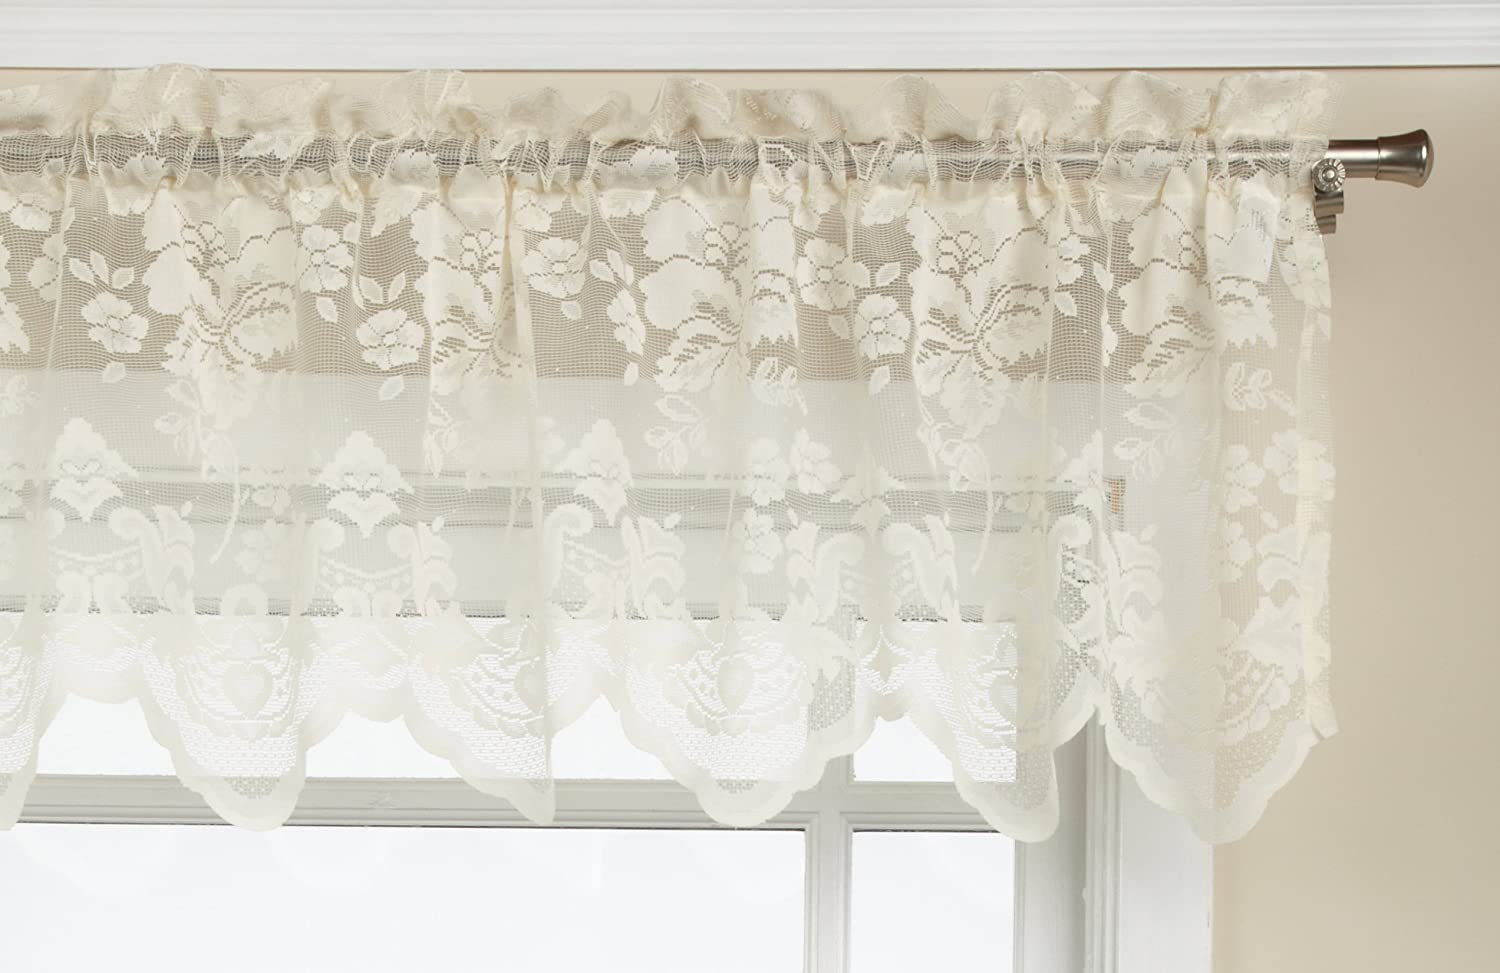 Lorraine Home Fashions Floral Vine 60-inch x 18-inch Valance, Ivory